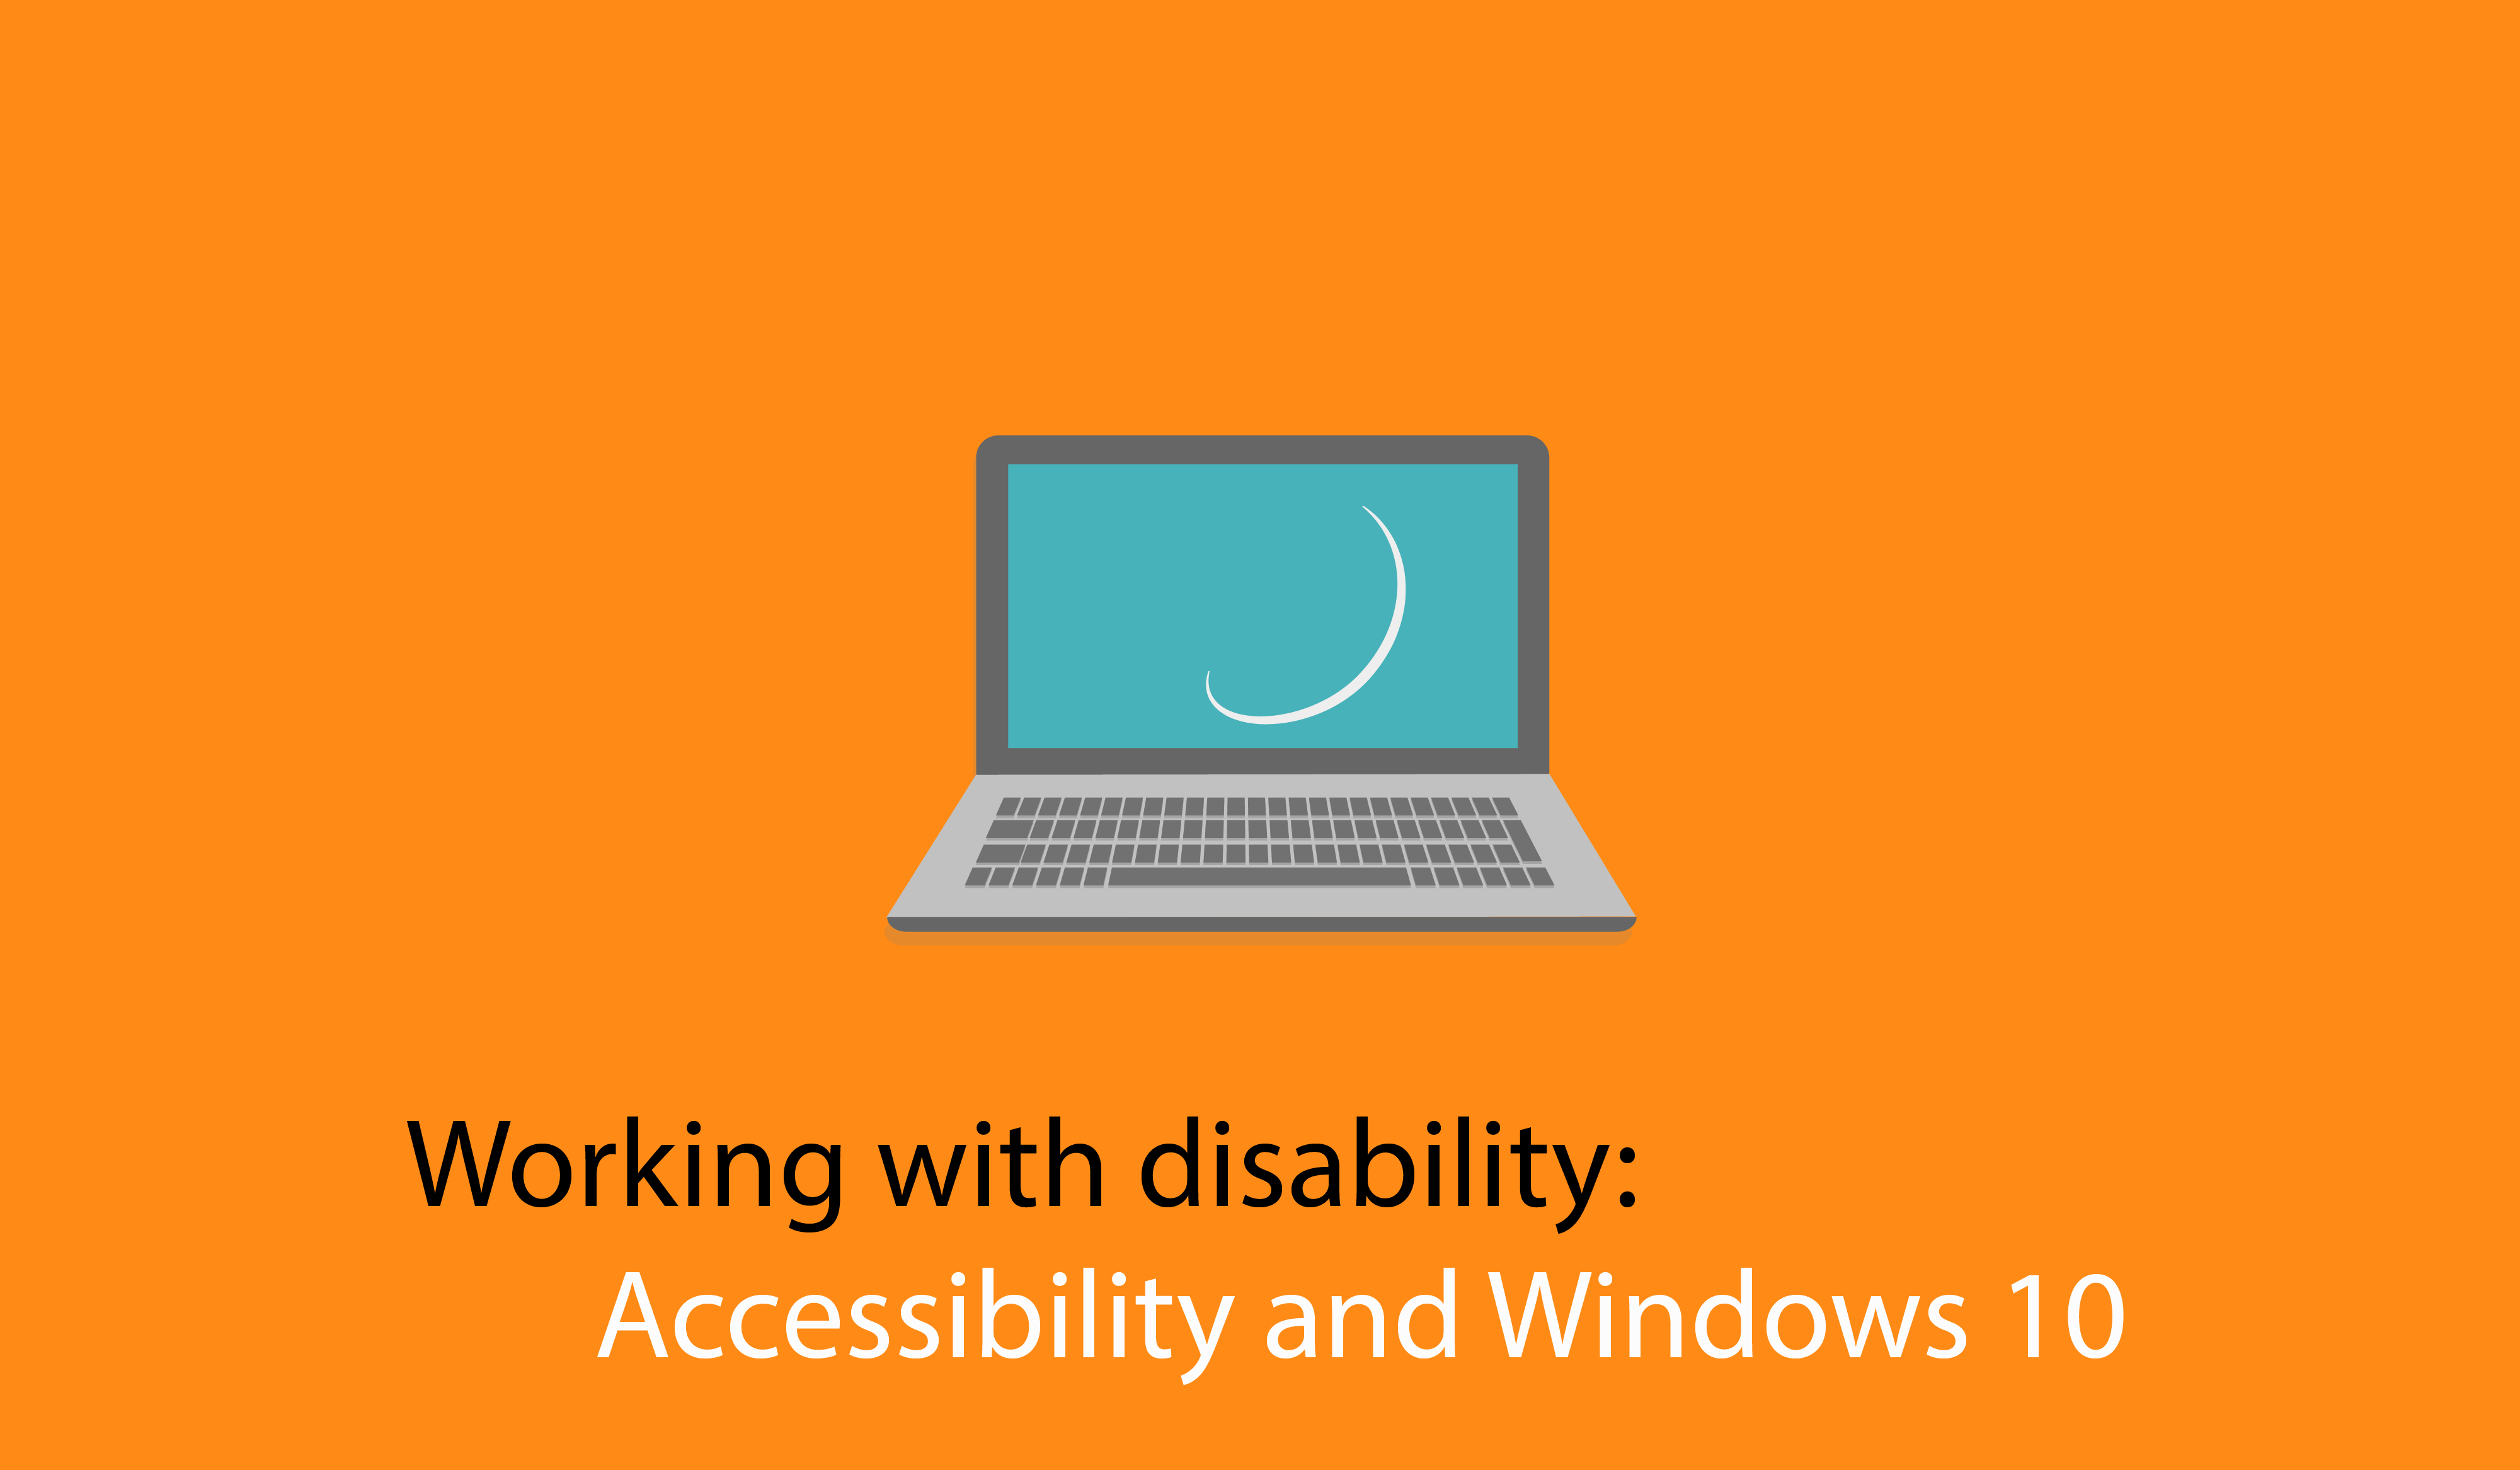 Working with disability: Accessibility and Windows 10